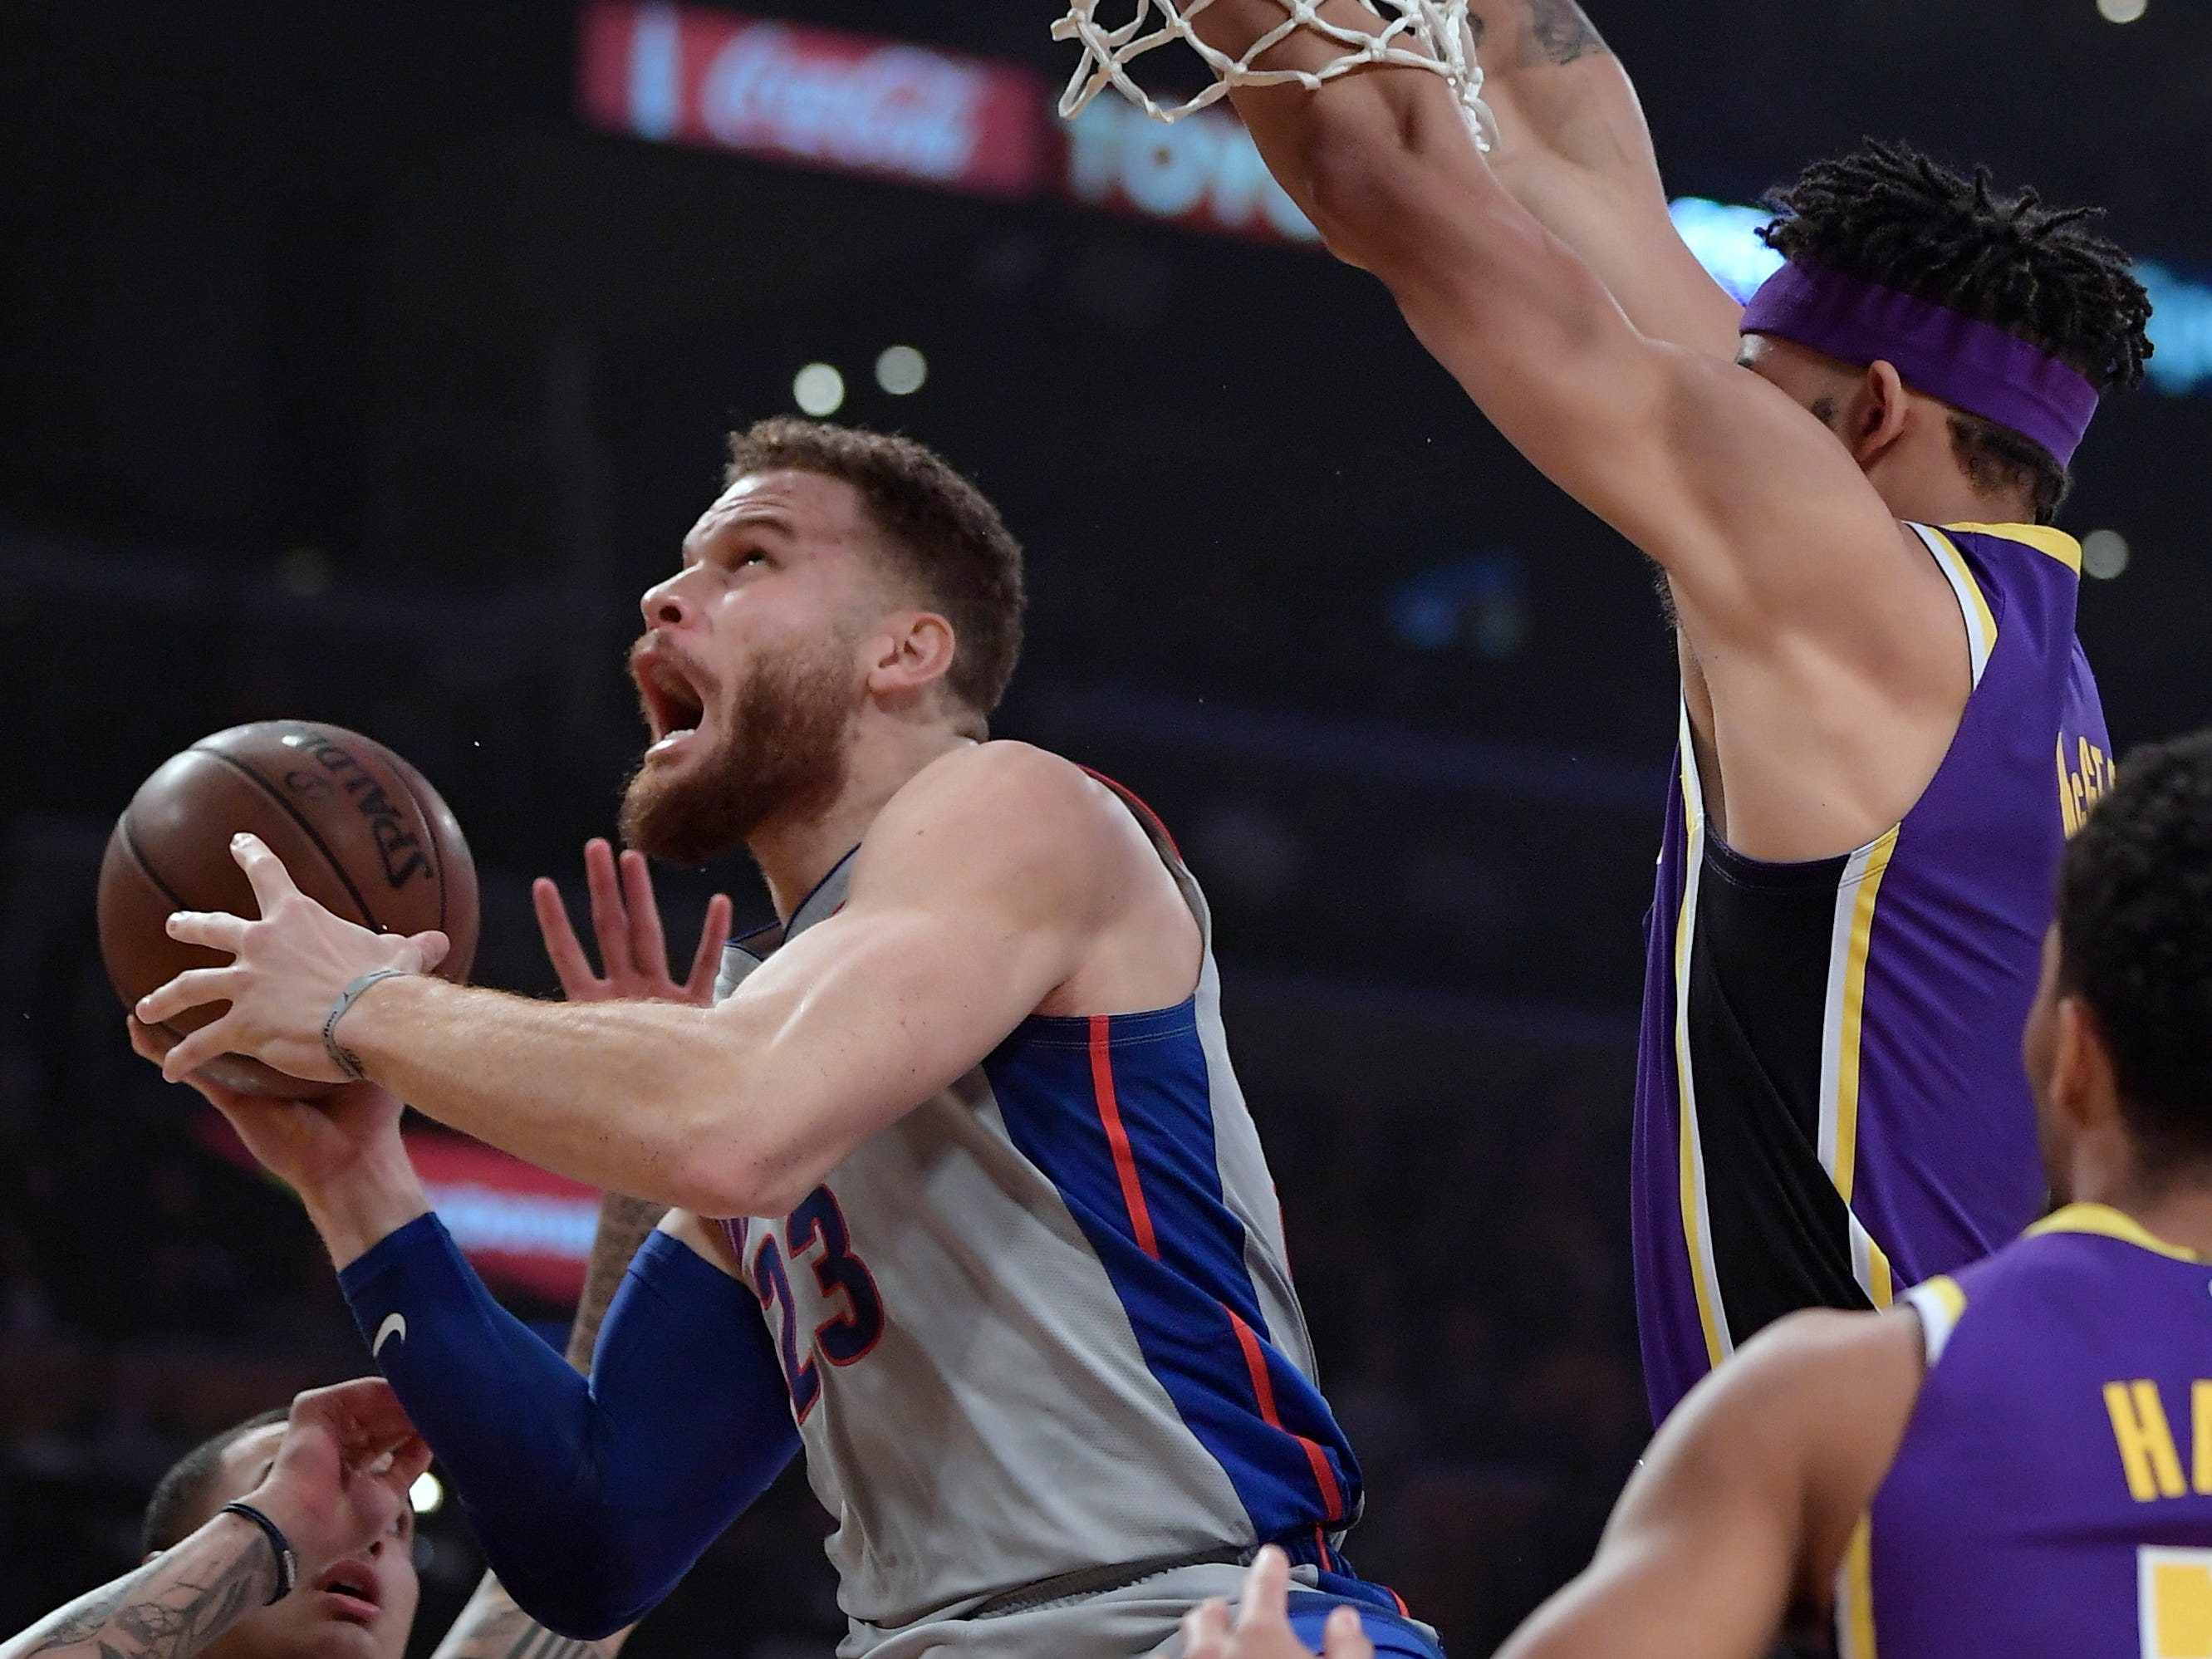 Detroit Pistons forward Blake Griffin, second from left, prepares to shoot as Los Angeles Lakers forward Kyle Kuzma, left, and center JaVale McGee, second from right, defend during the first half.